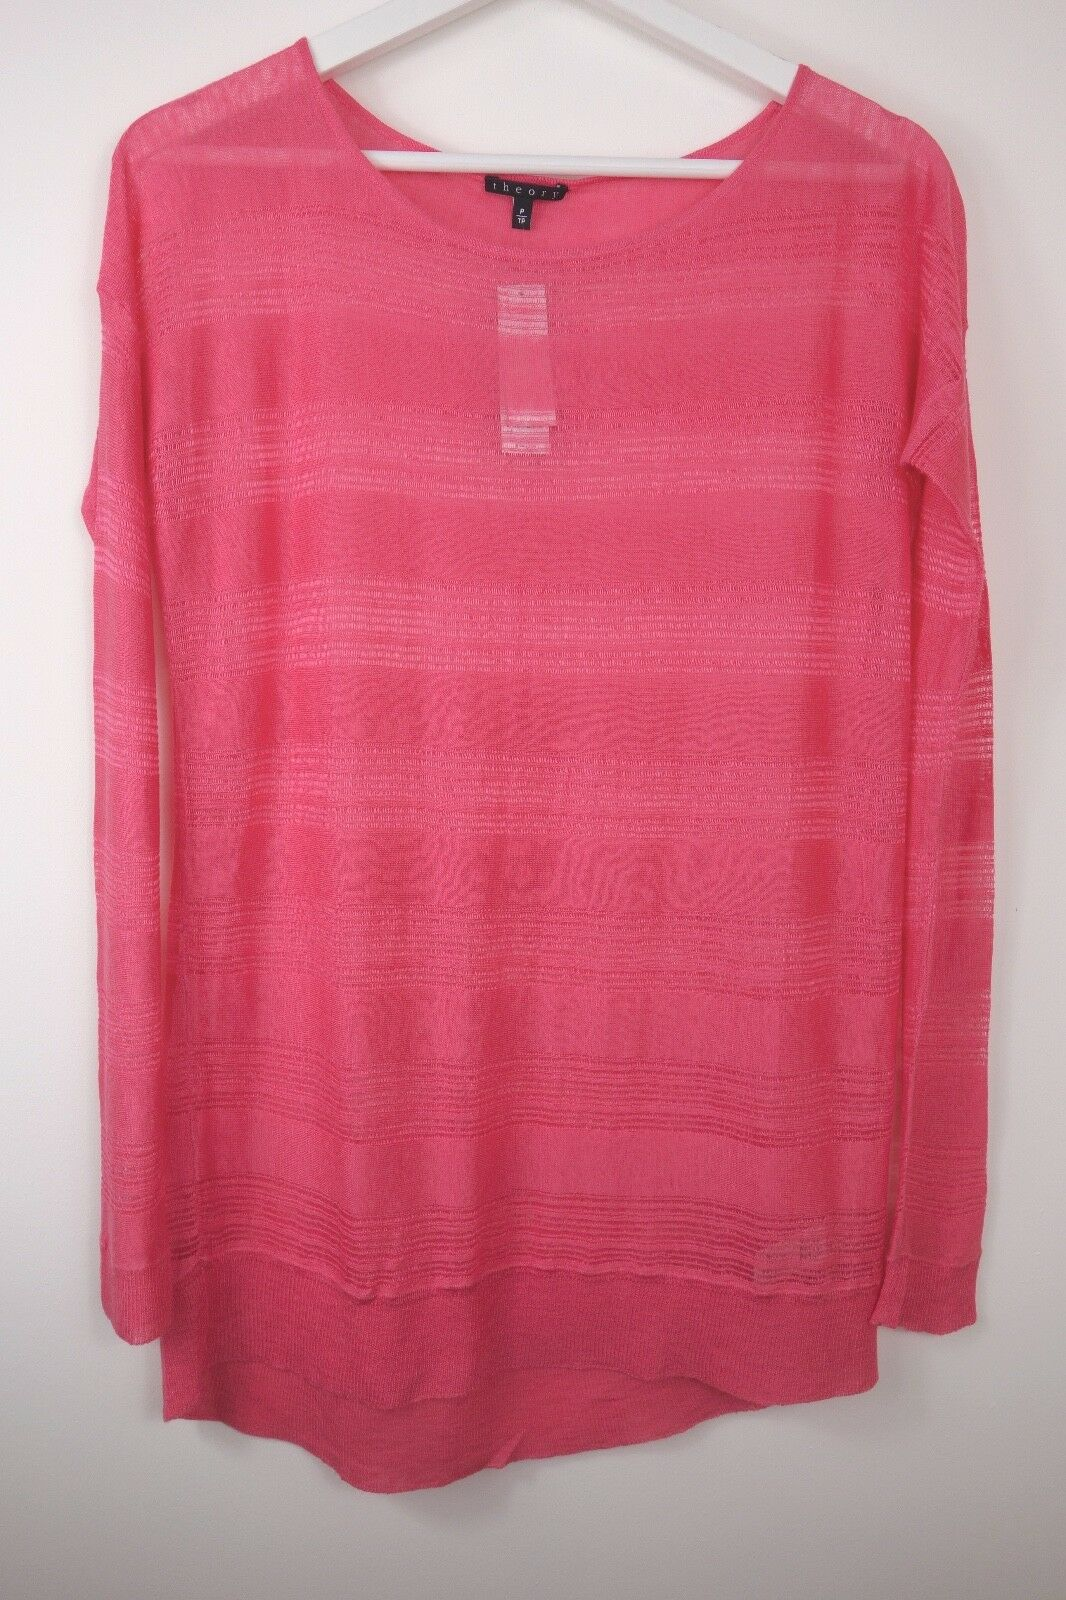 NWT Theory Taoma Sweater Neon Pink Jumper, THEORY size XS